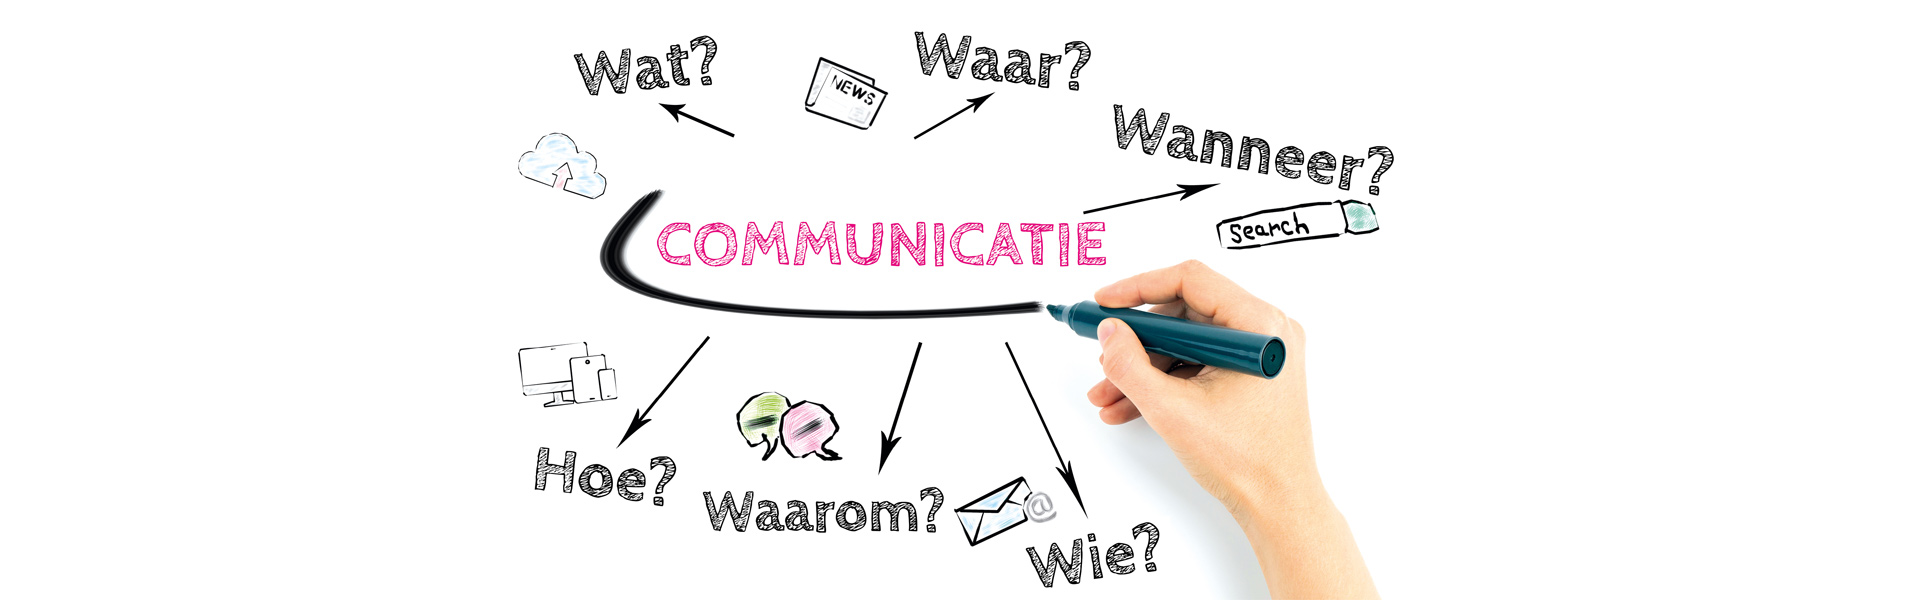 tips crisiscommunicatie bureau zorgmarketing blog